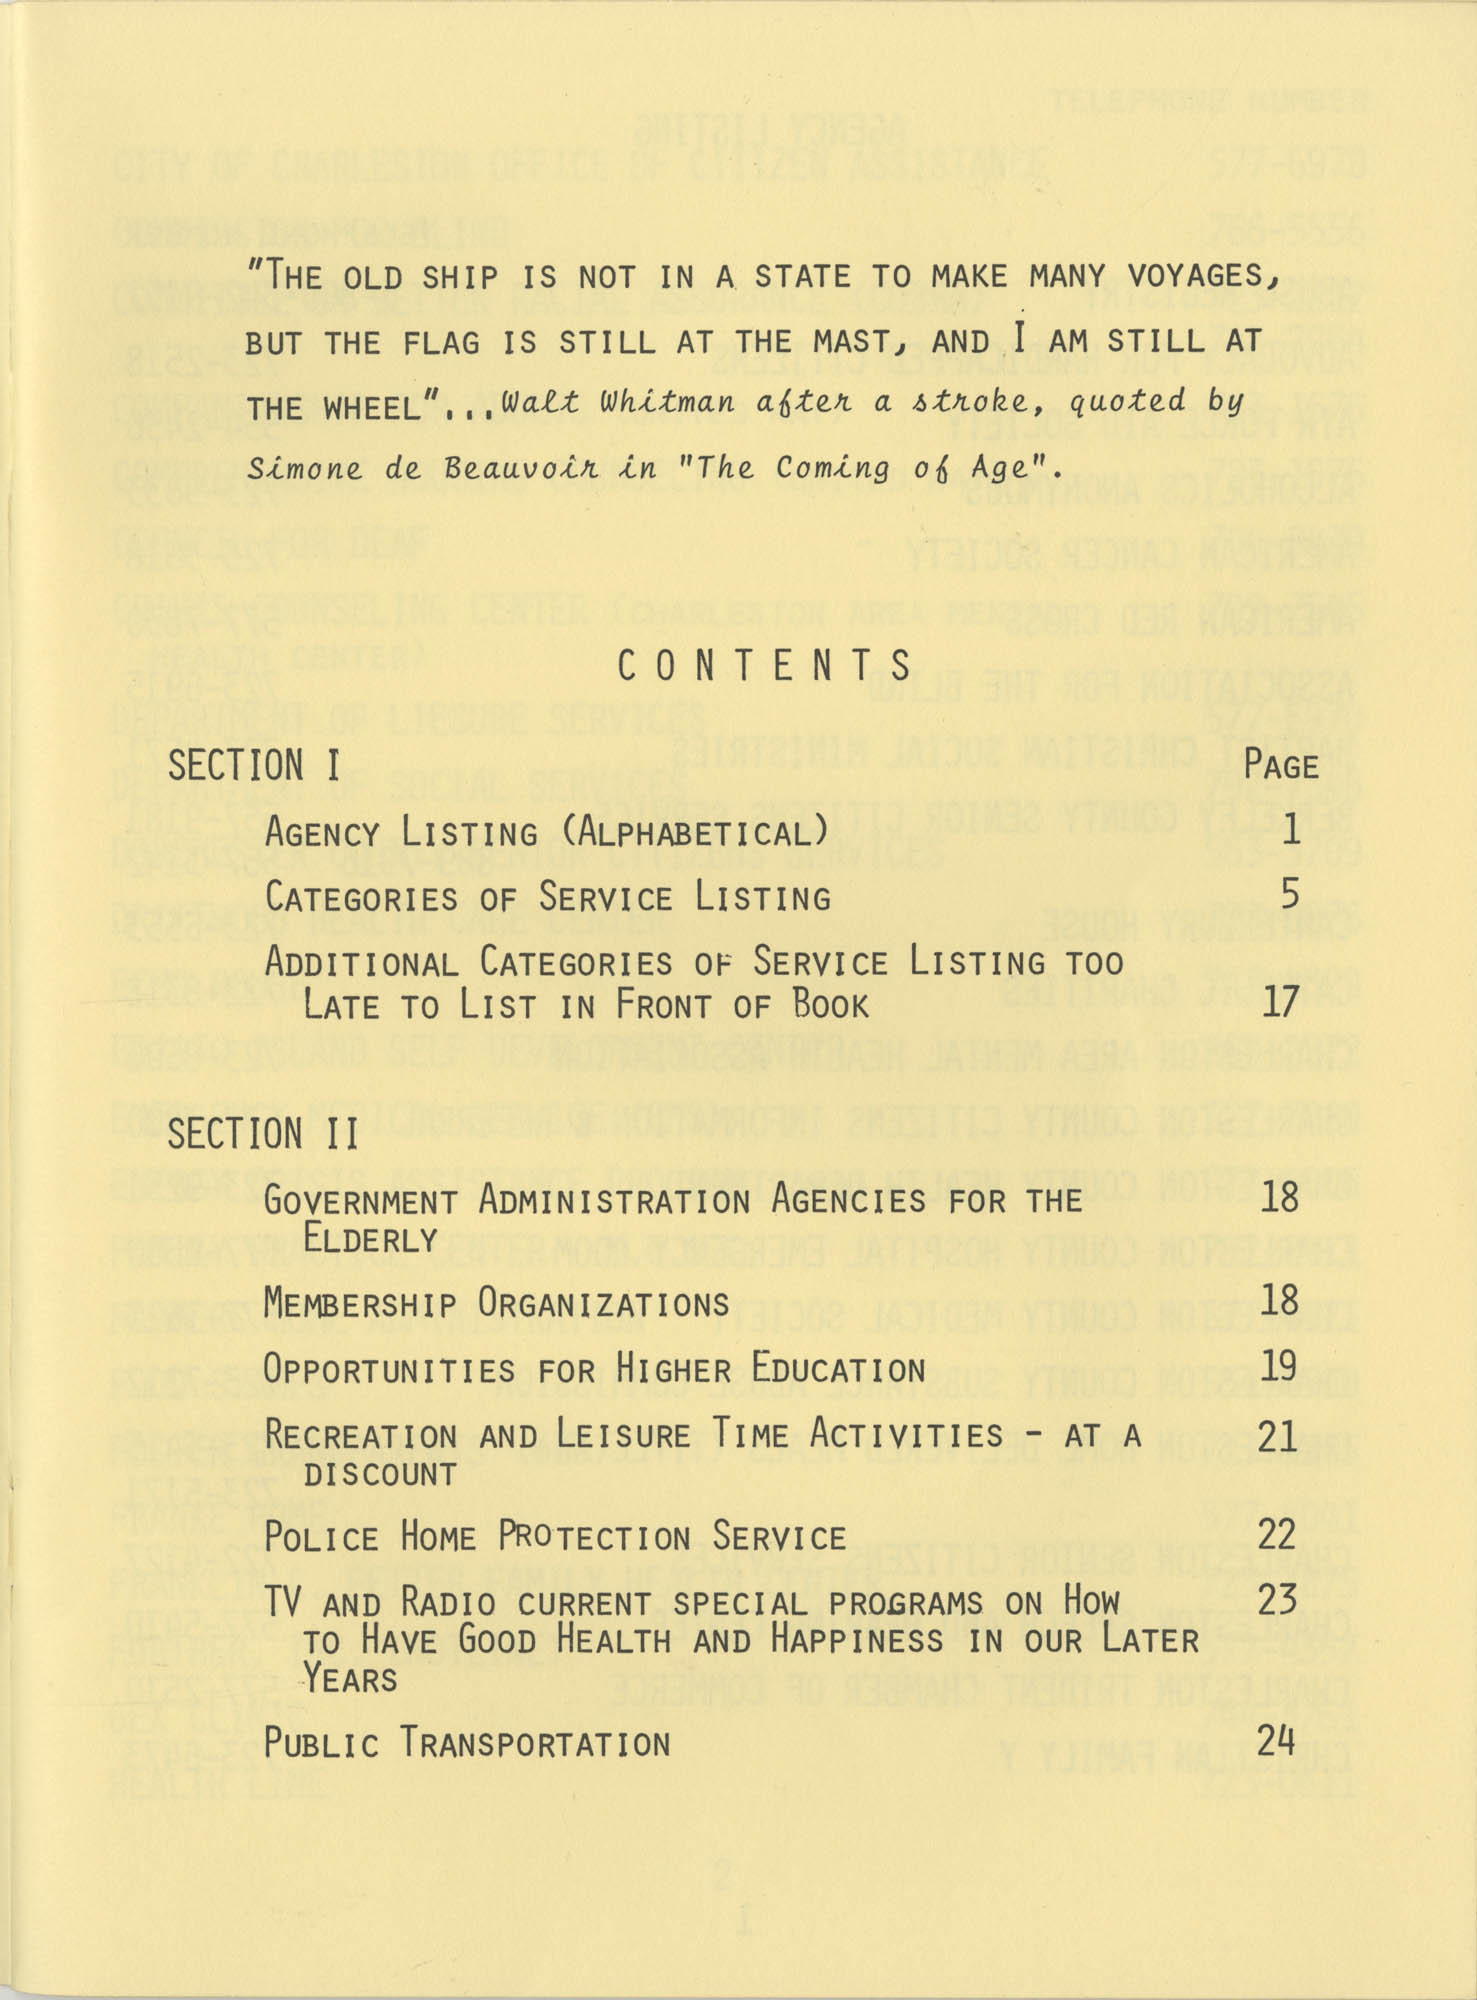 Telephone Line to Care for the Elderly, Table of Contents